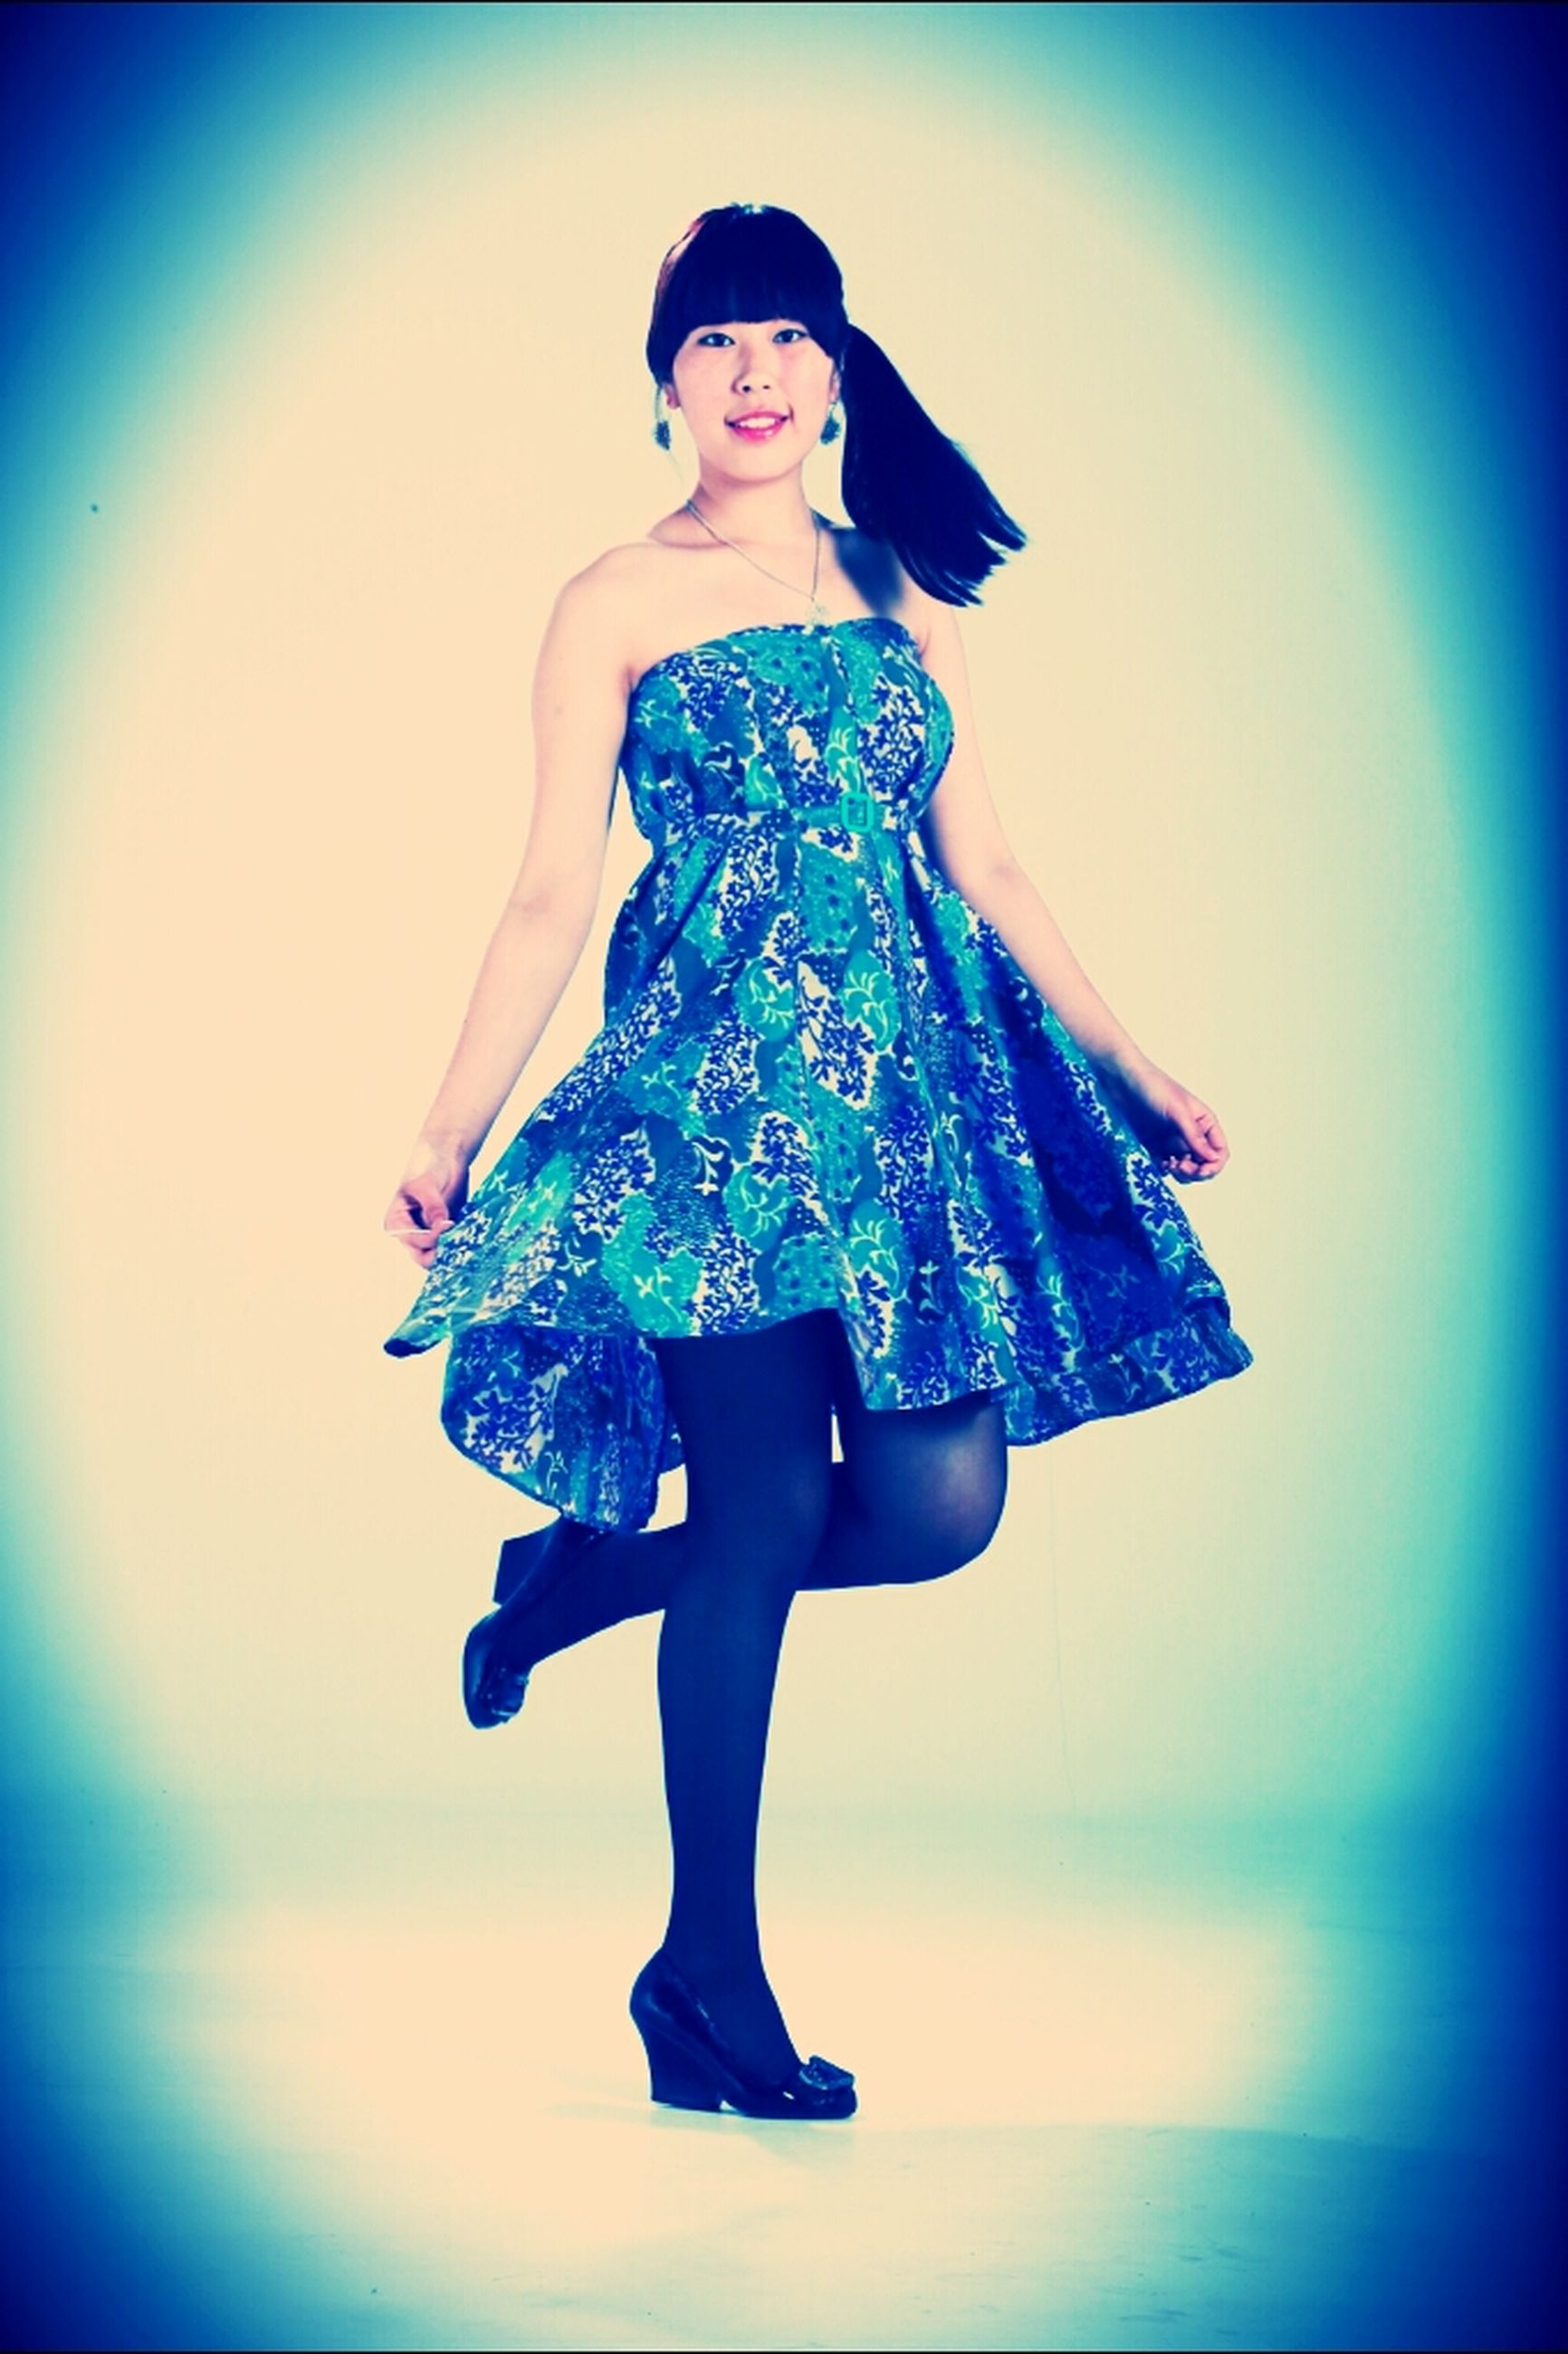 full length, lifestyles, front view, standing, leisure activity, arms outstretched, casual clothing, blue, young adult, person, looking at camera, portrait, young women, low angle view, arms raised, mid-air, dress, fun